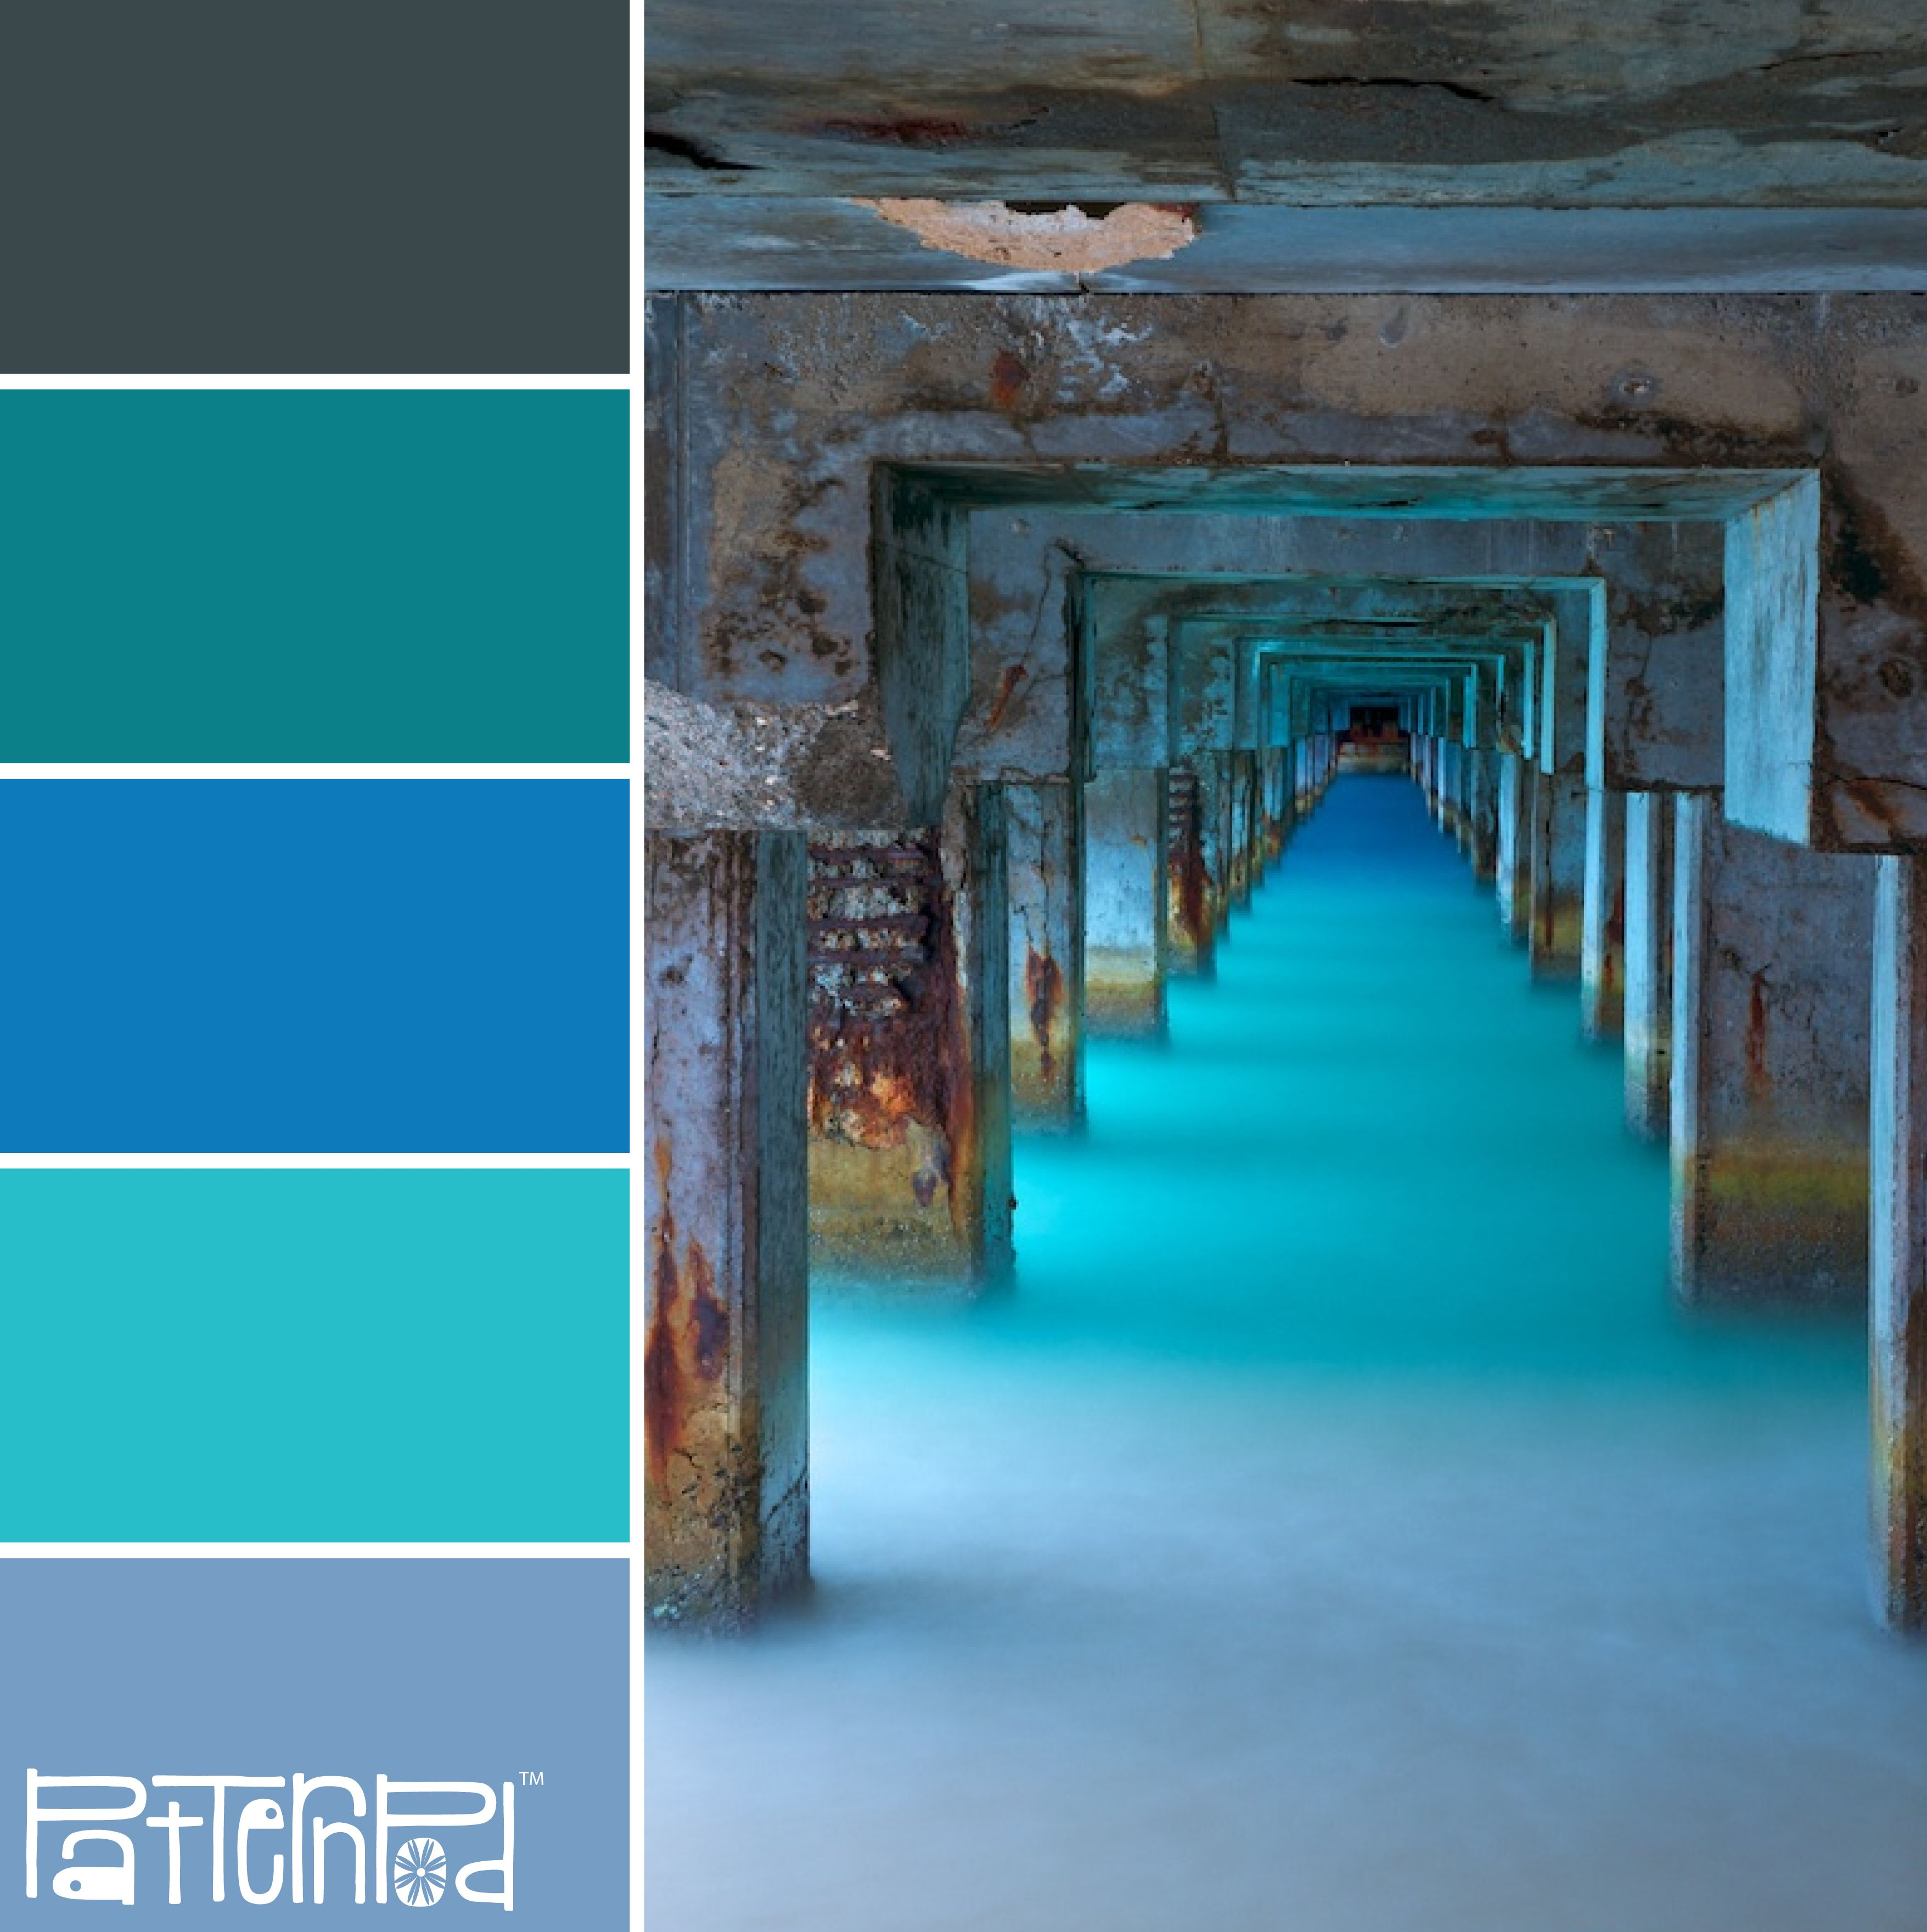 Cerulean Sea #Patternpod #Patternpodcolor #Color #Colorpalettes